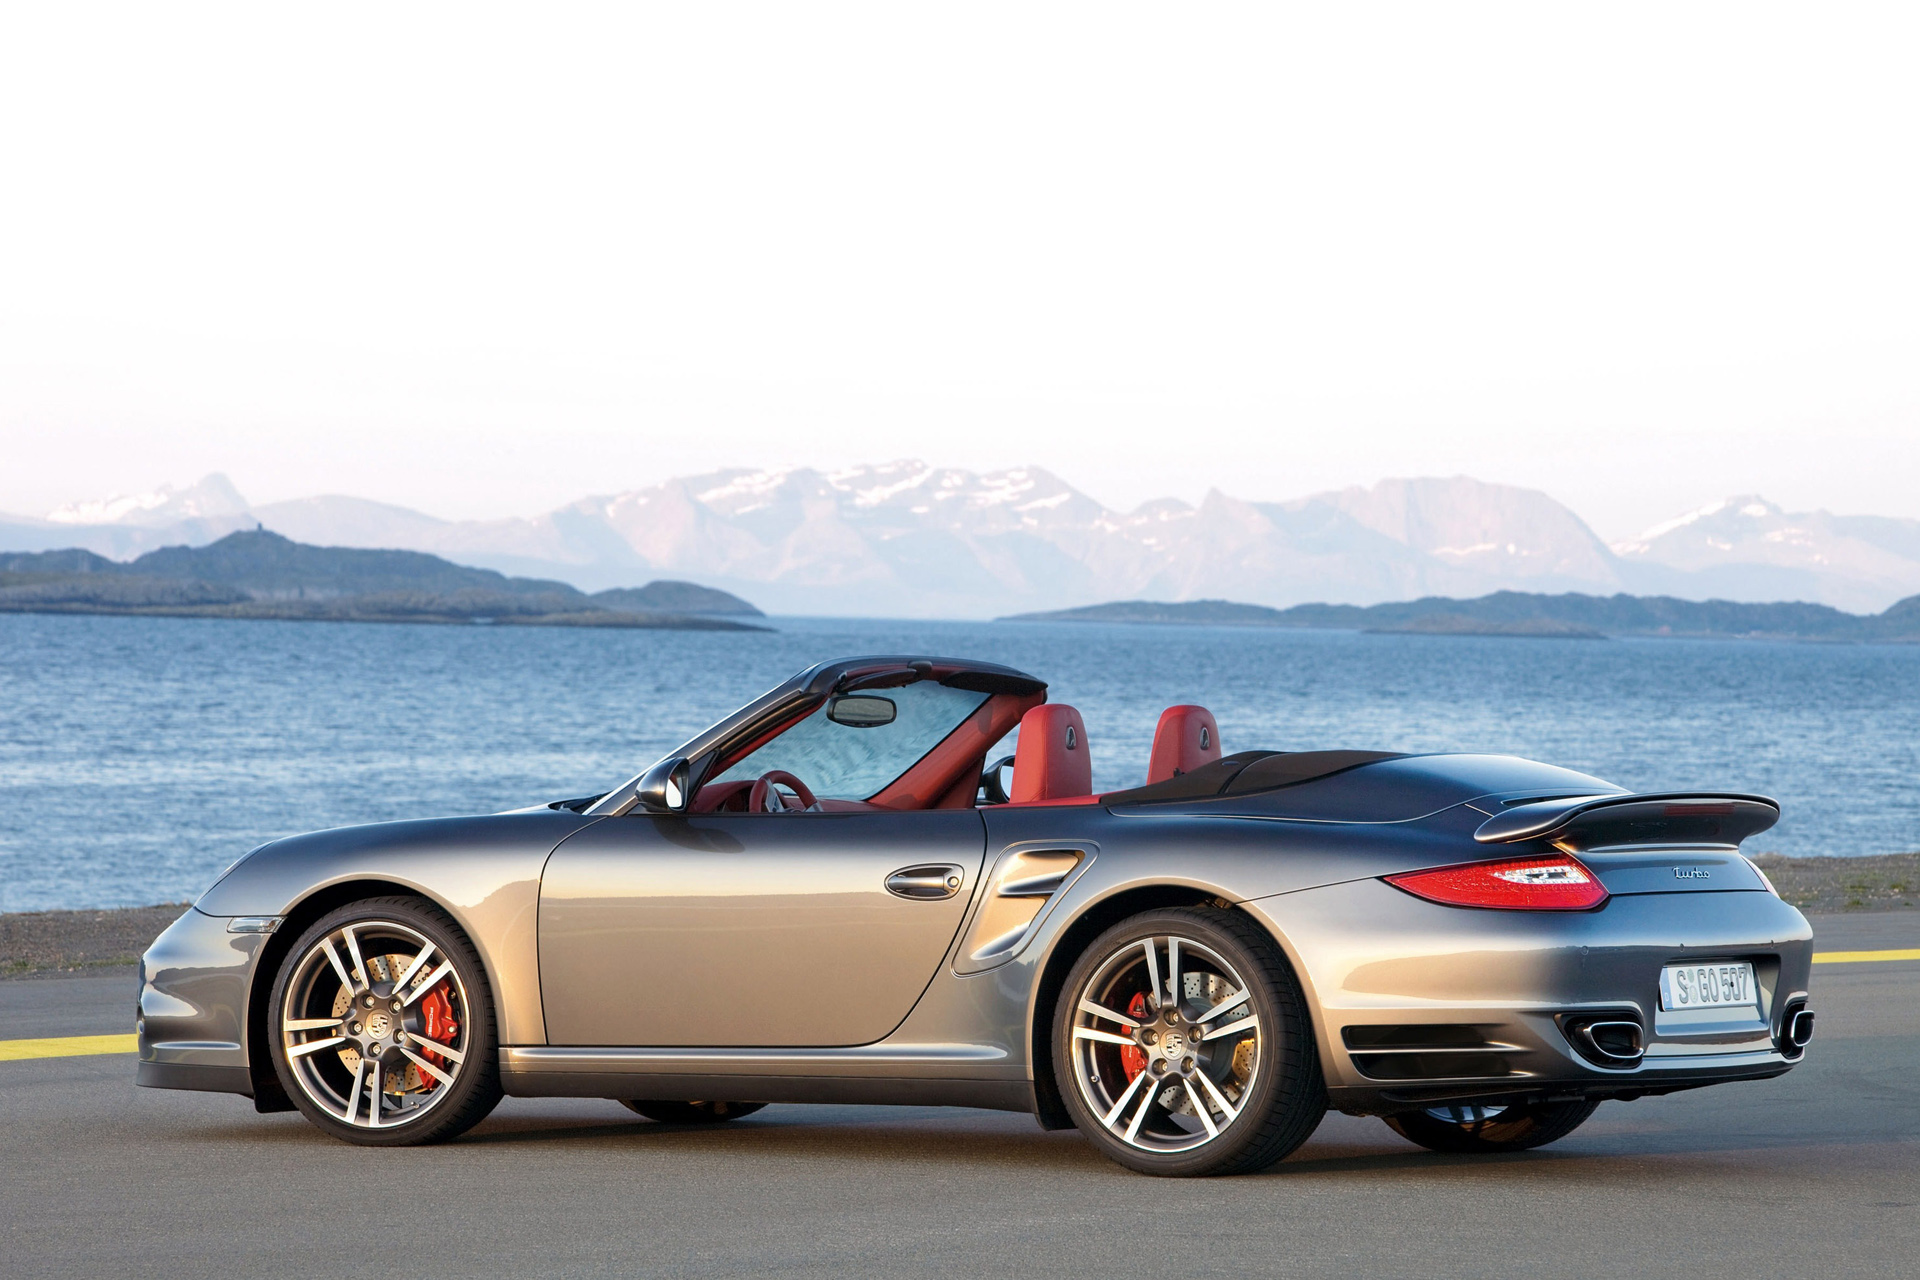 Porsche 911 Turbo Cabriolet (997) photo 66501